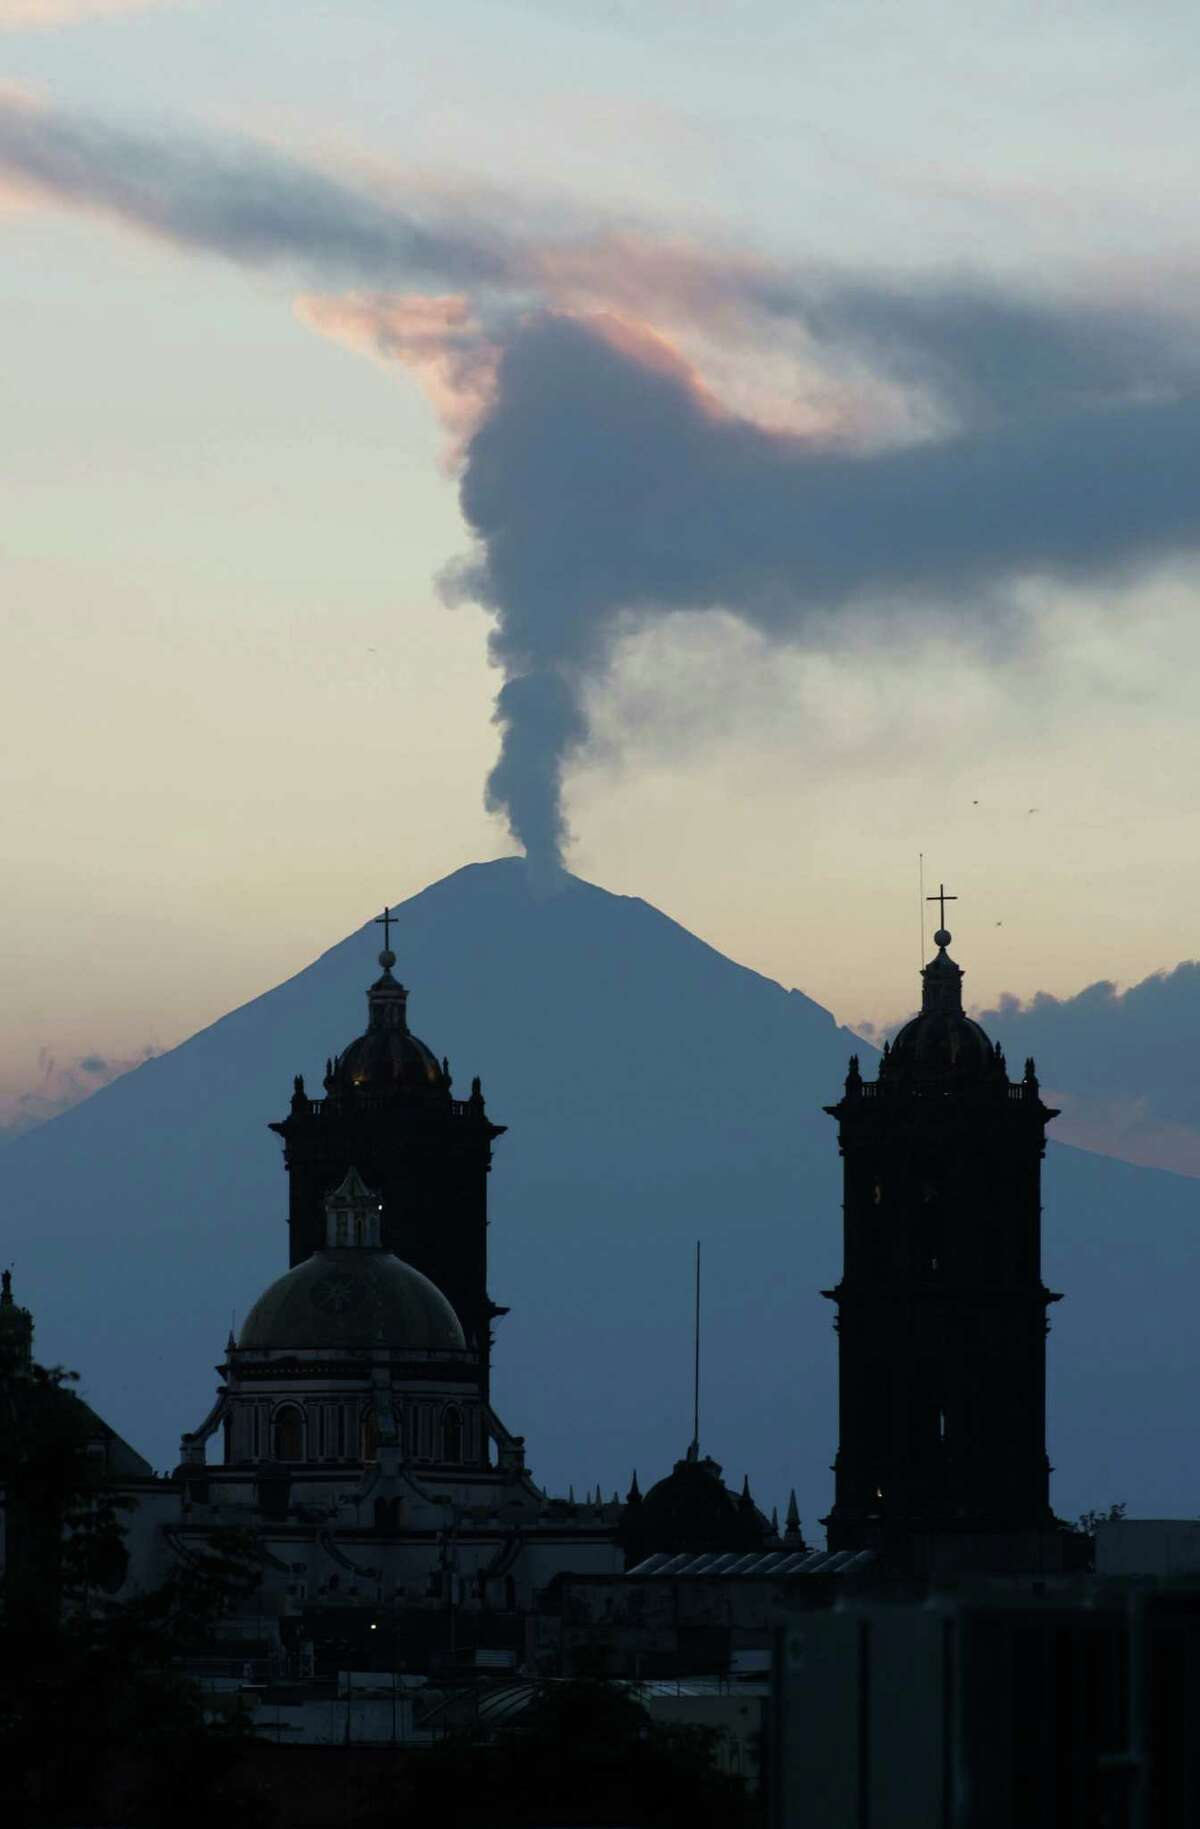 A plume of steam rises from the Popocatepetl volcano seen from the city of Puebla, Mexico, Saturday April 14, 2012. An early morning exhalation from the volcano sent ashes to towns near the area as moderate activity at the volcano continues. (AP Photo/Joel Merino)